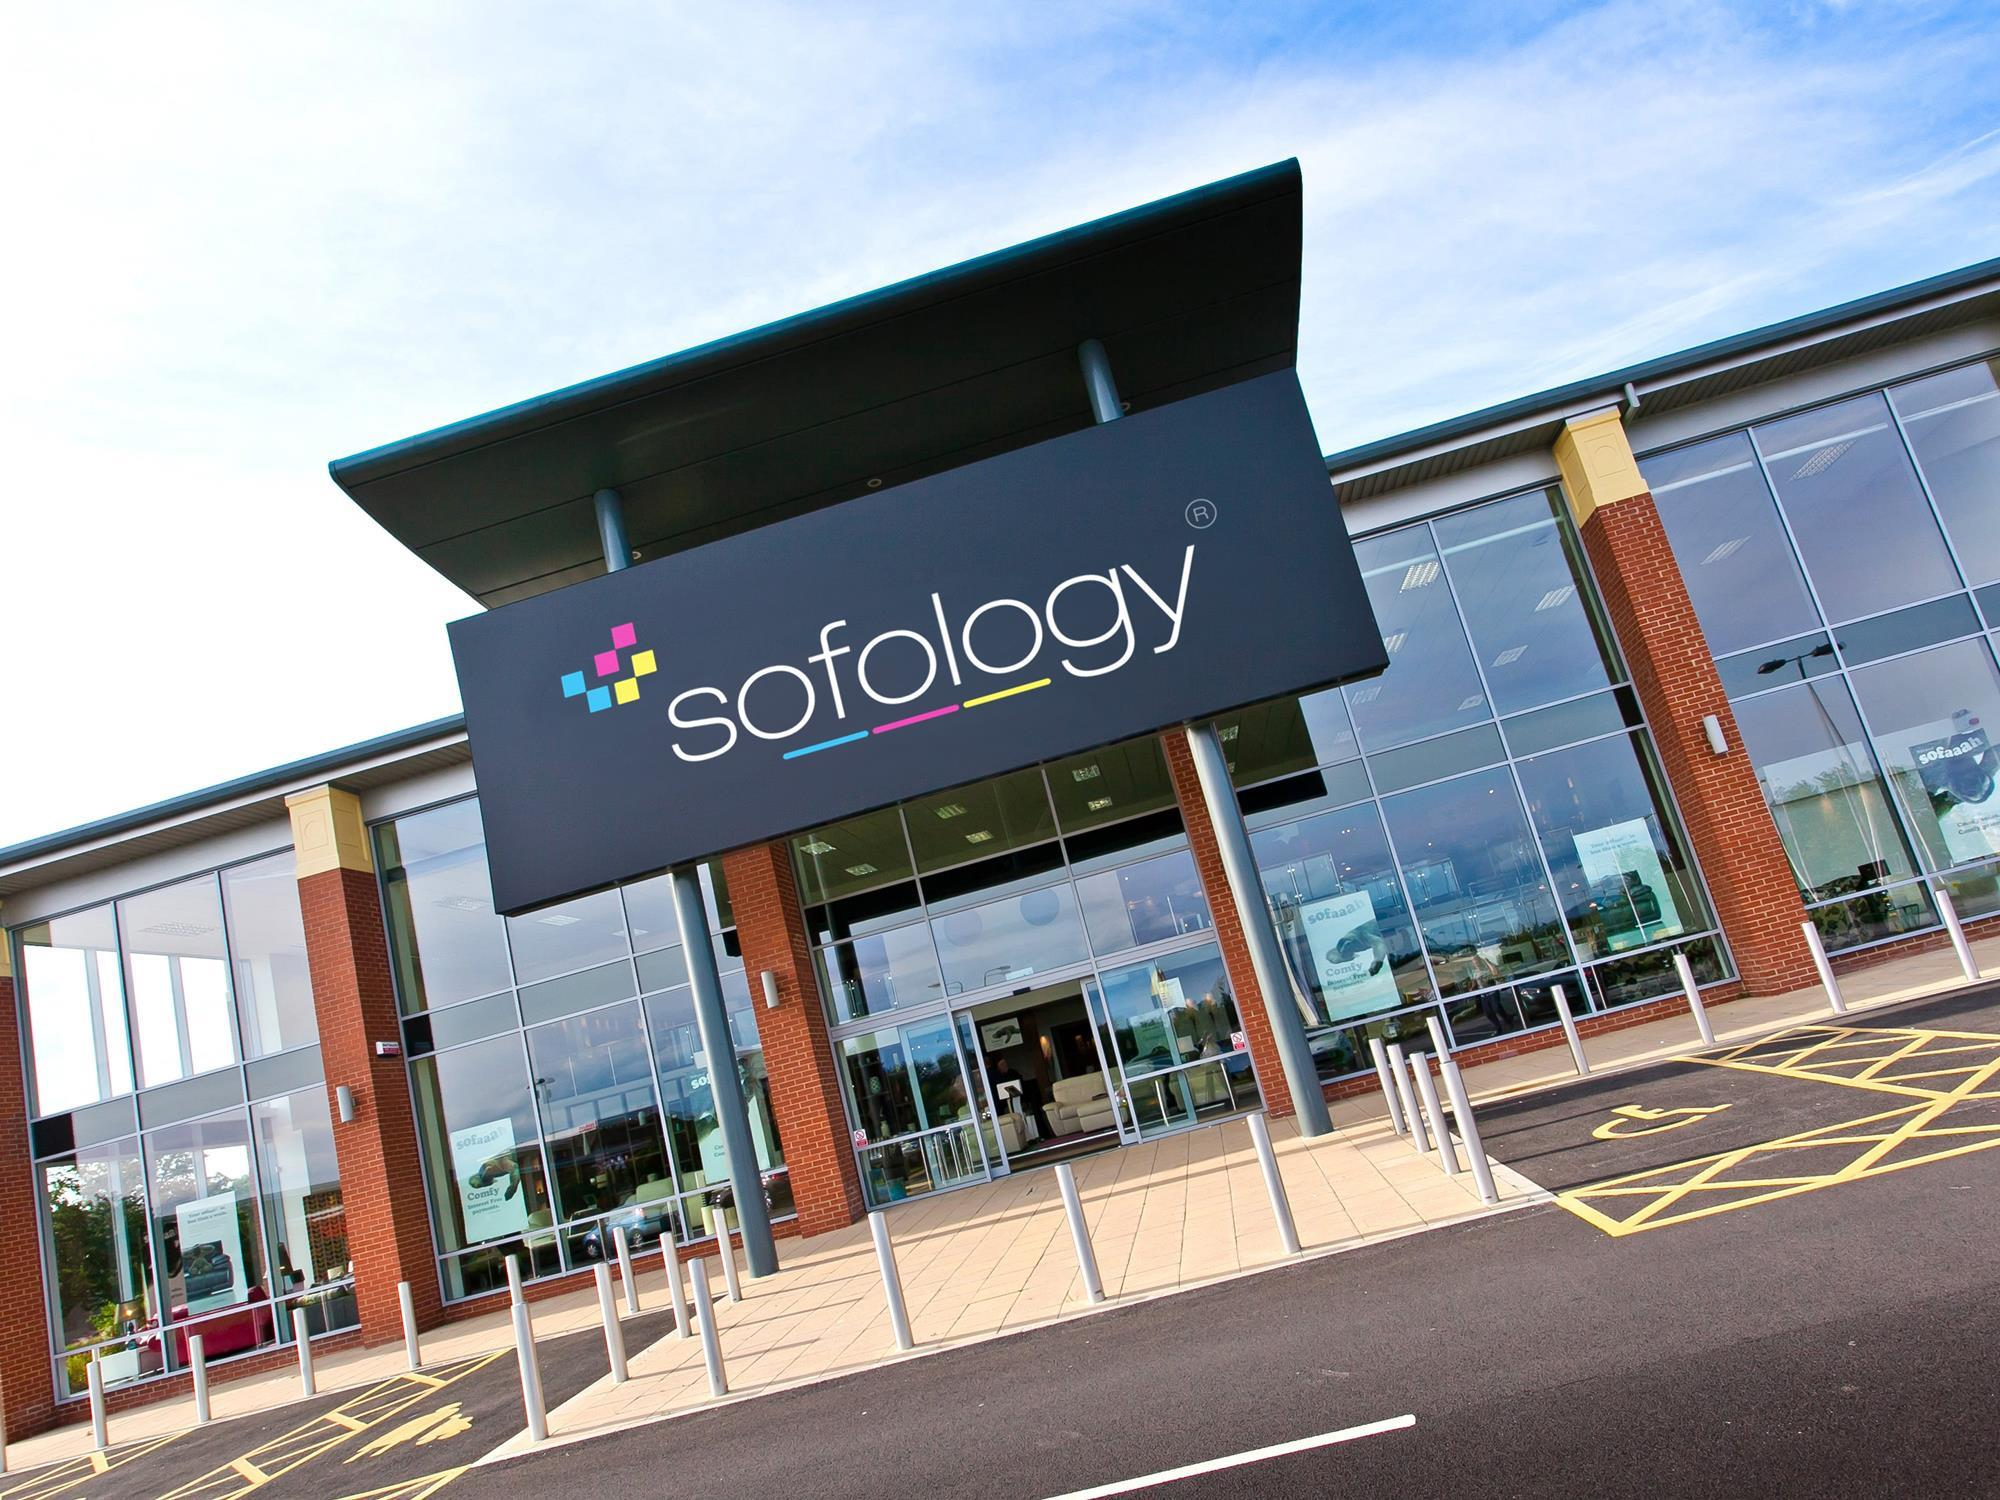 Sofology Online Support Dfs Acquires Sofa Specialist Sofology In 25m Deal News Retail